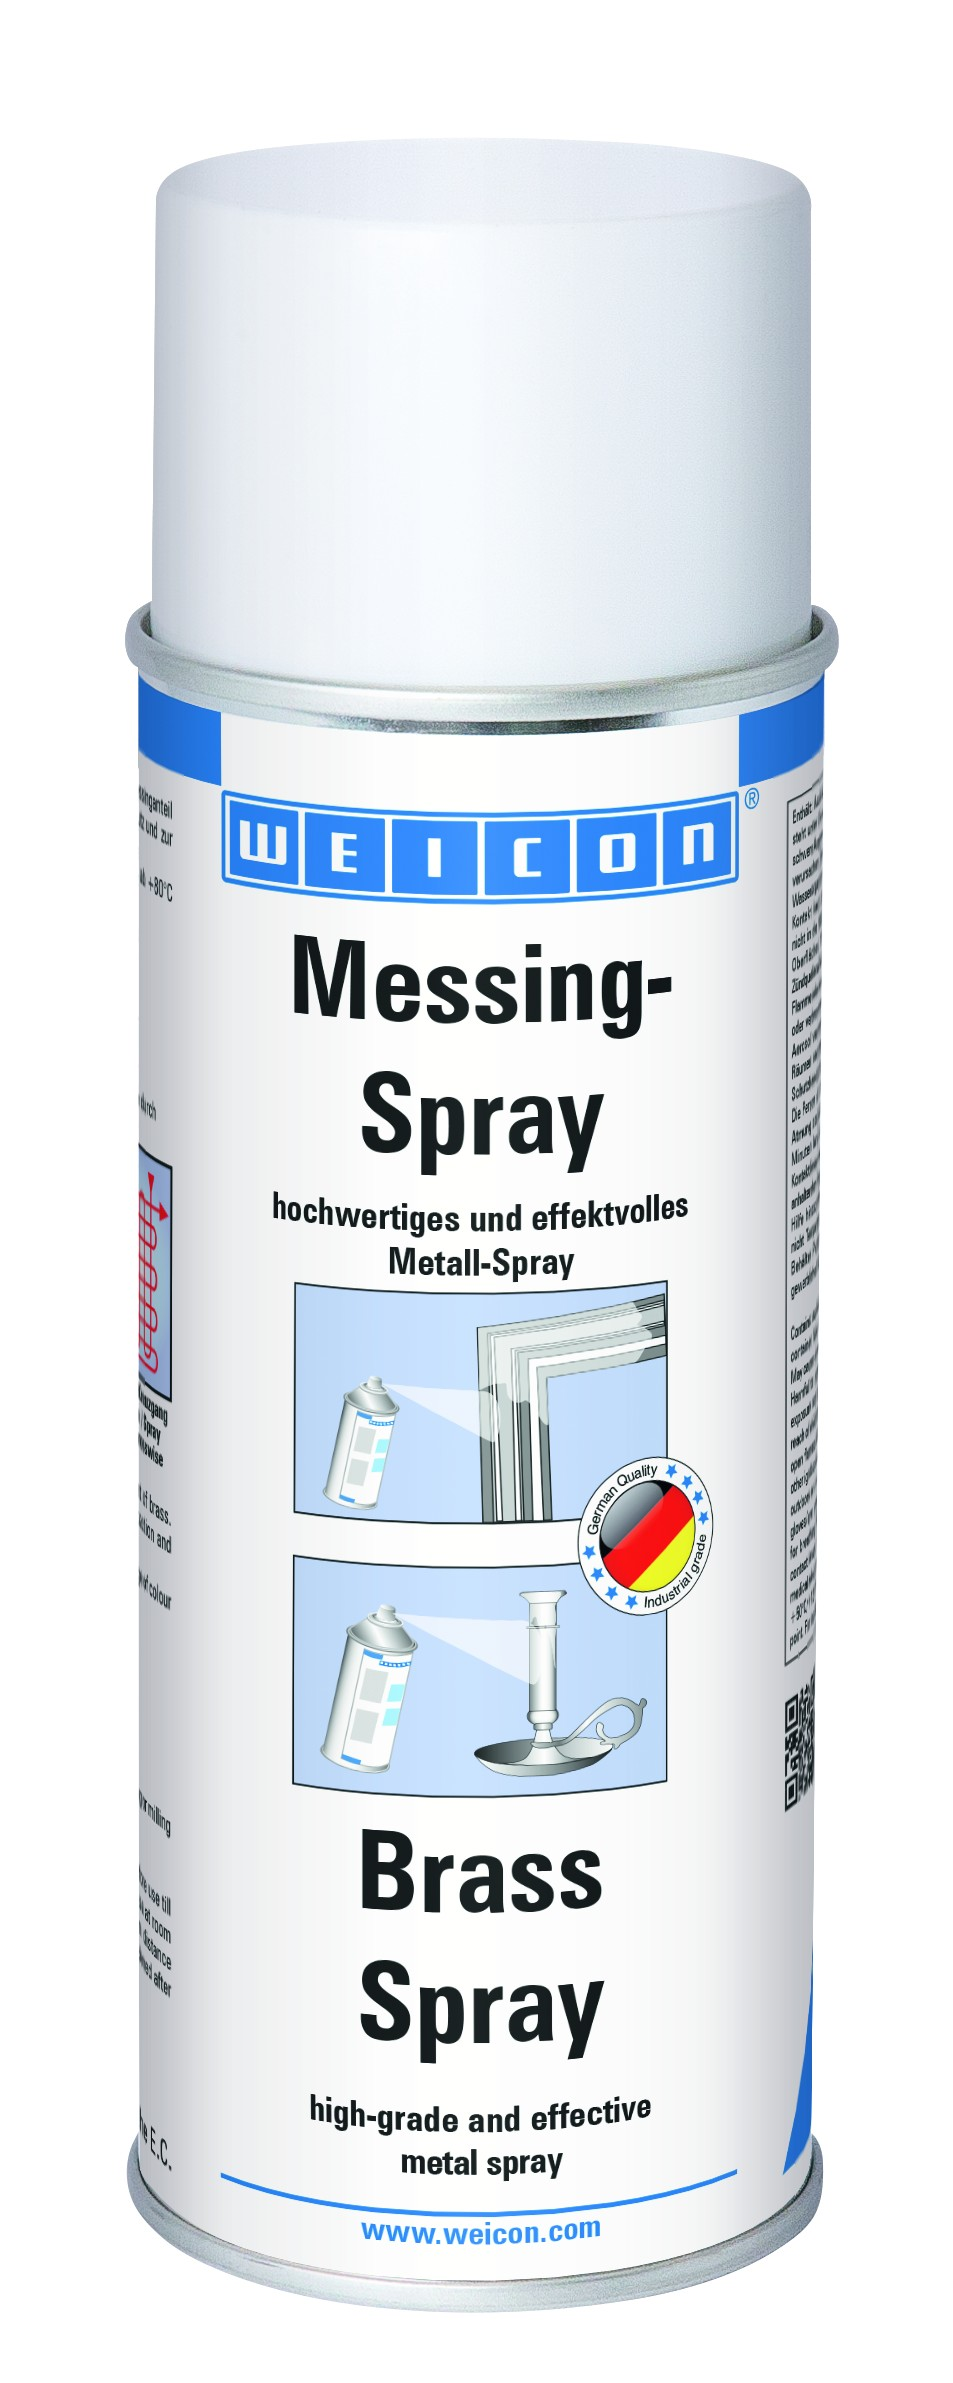 Messing-Spray